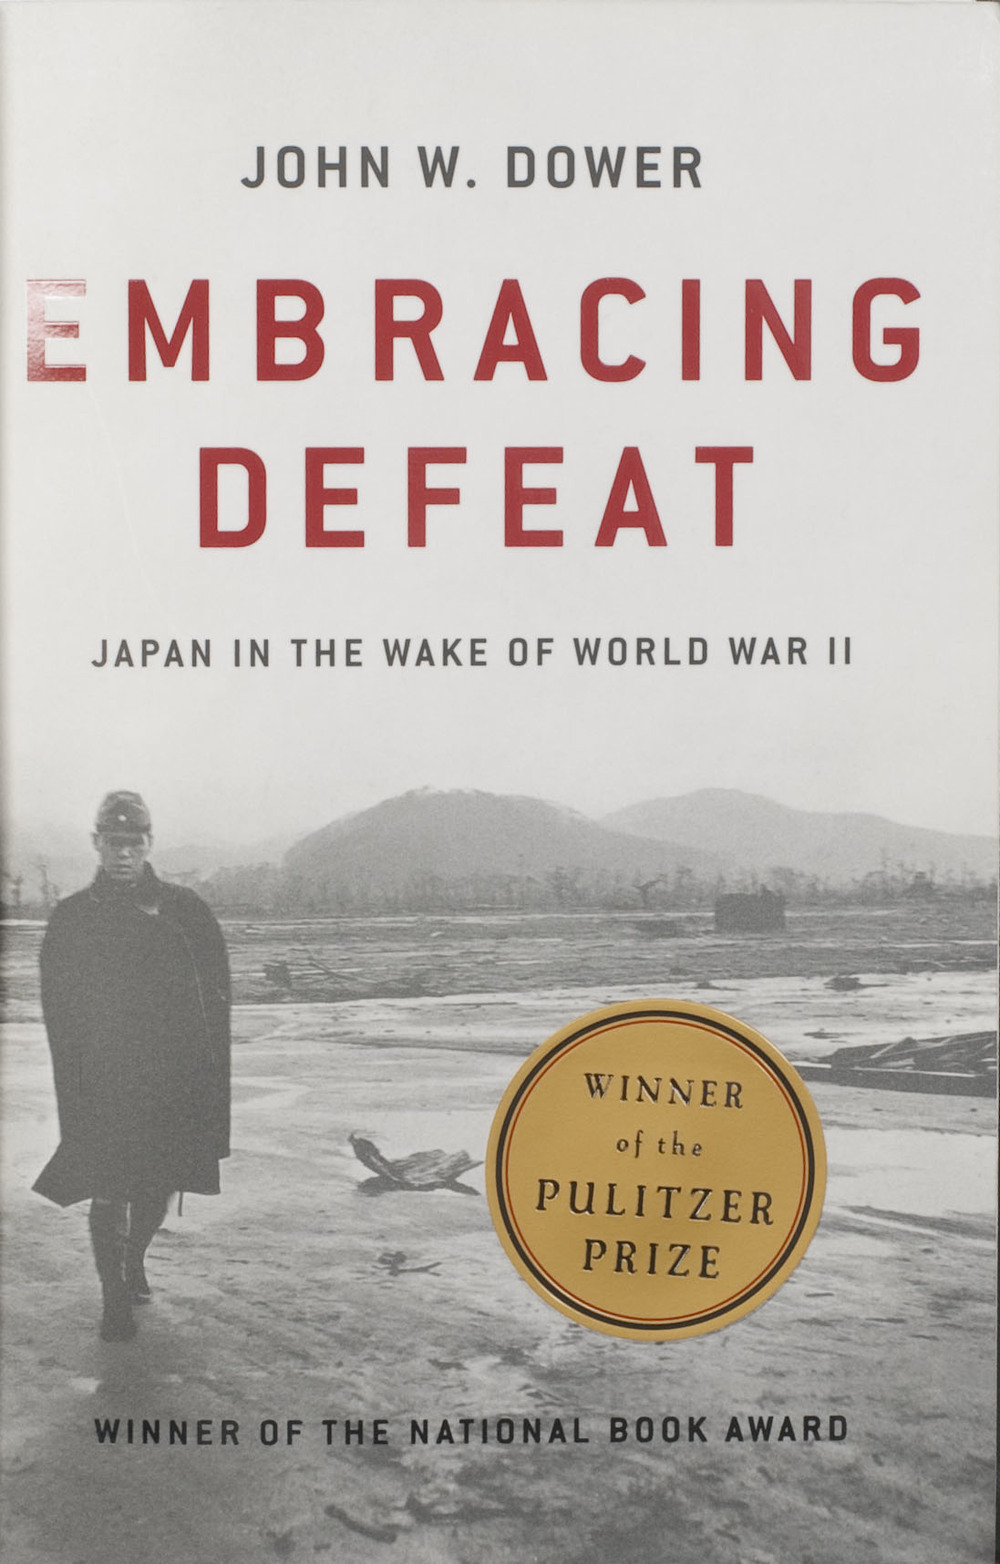 2000  Embracing Defeat: Japan in the Wake of World War II  by John W. Dower